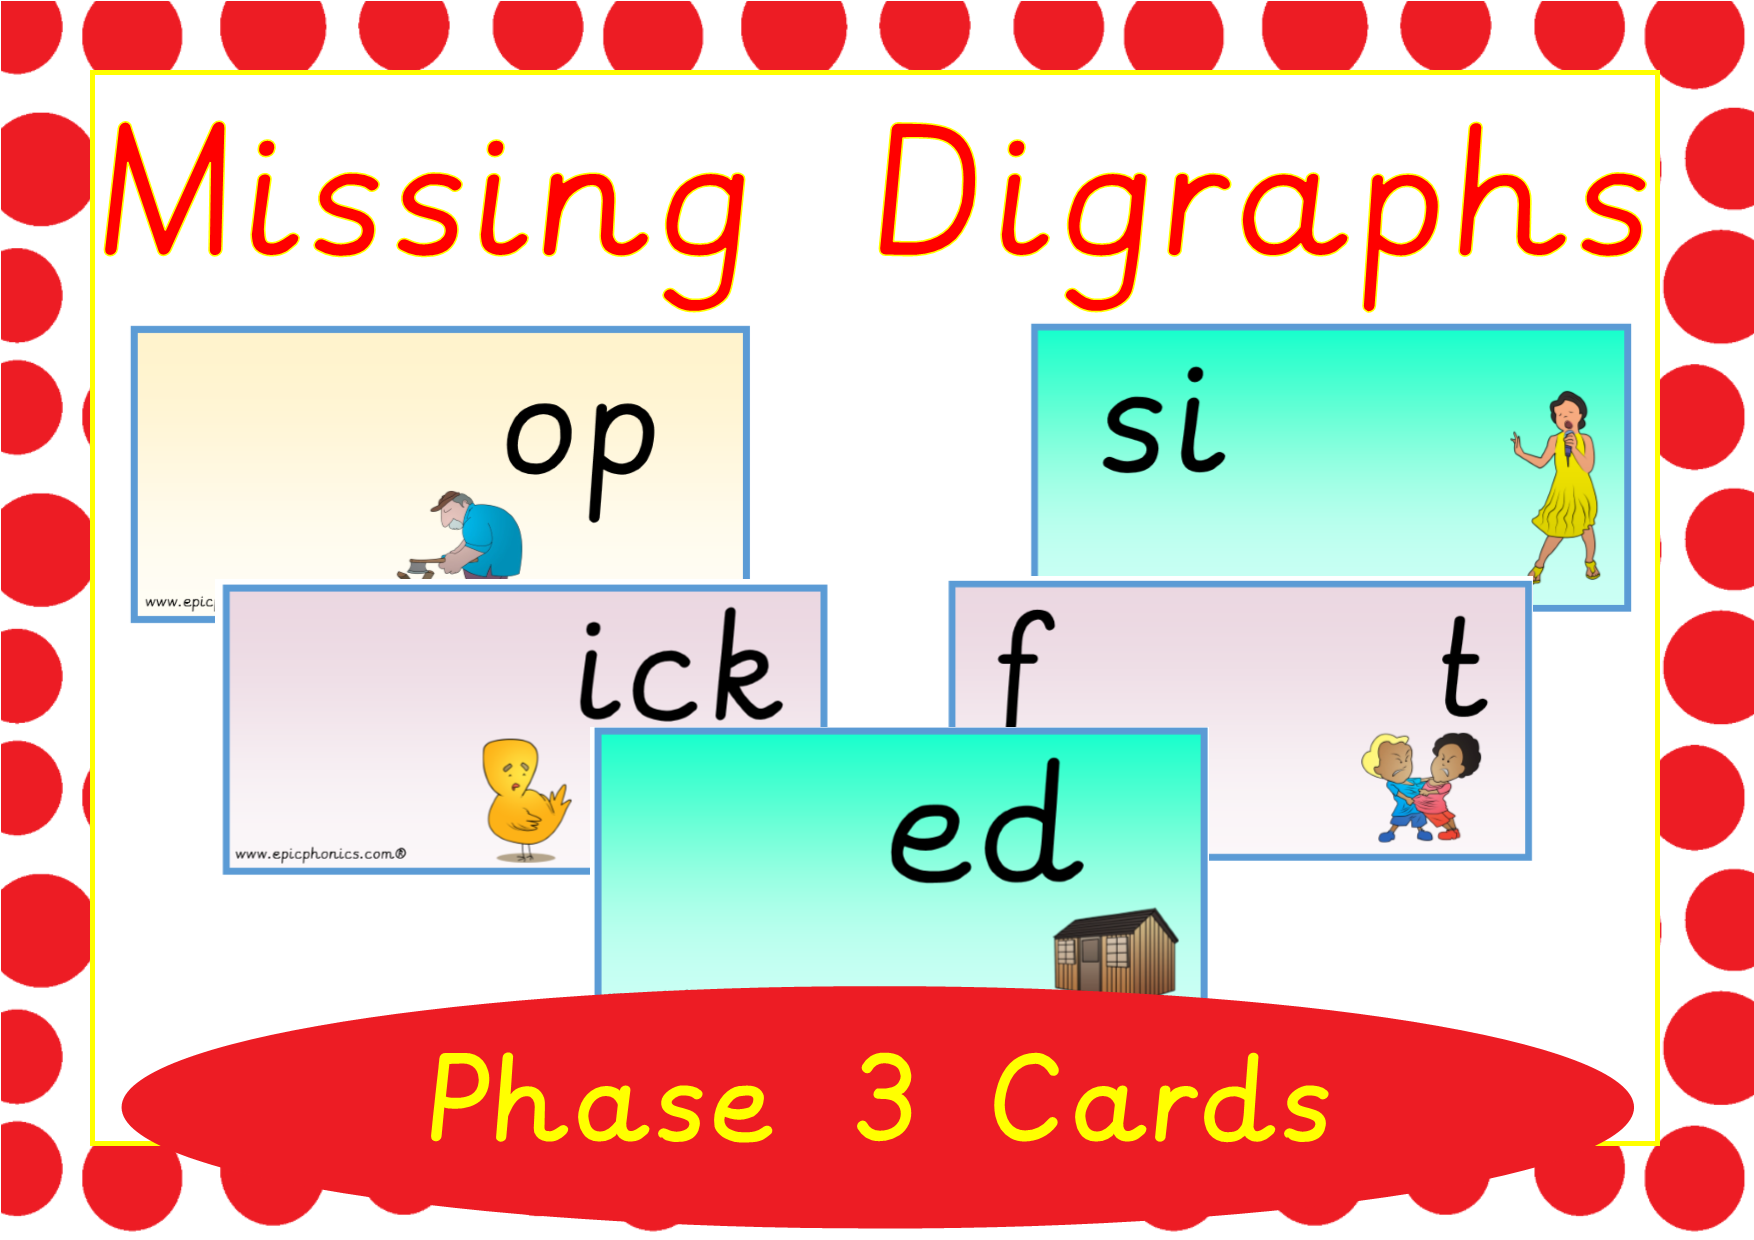 Missing Digraphs Phase 3 Activity Cards